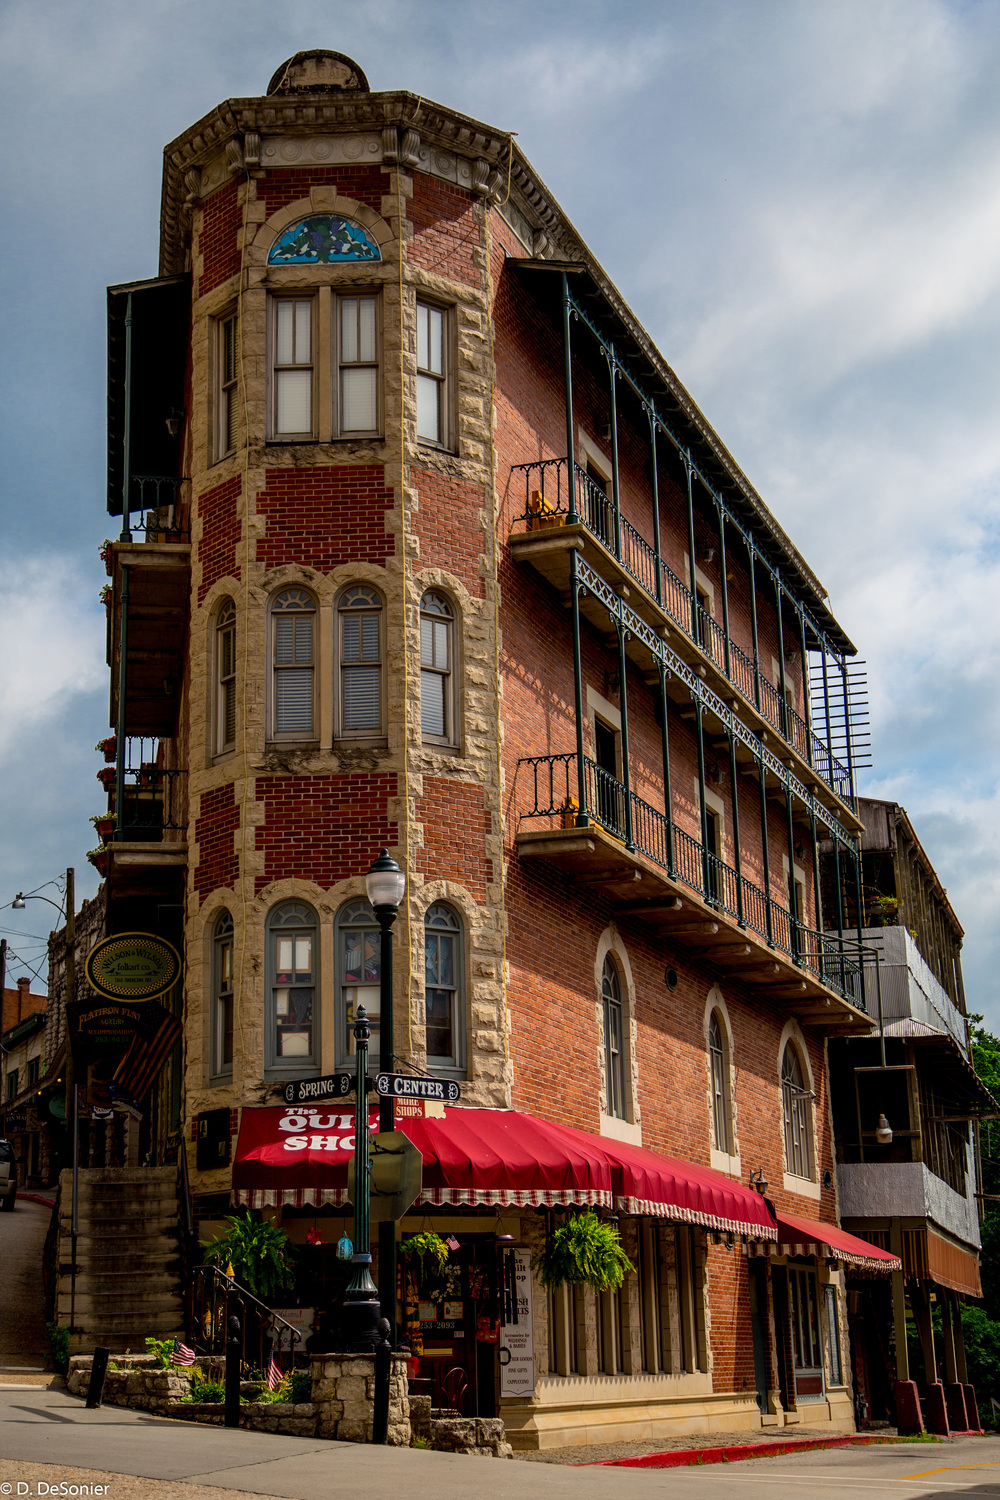 historic Eureka Springs, AR.